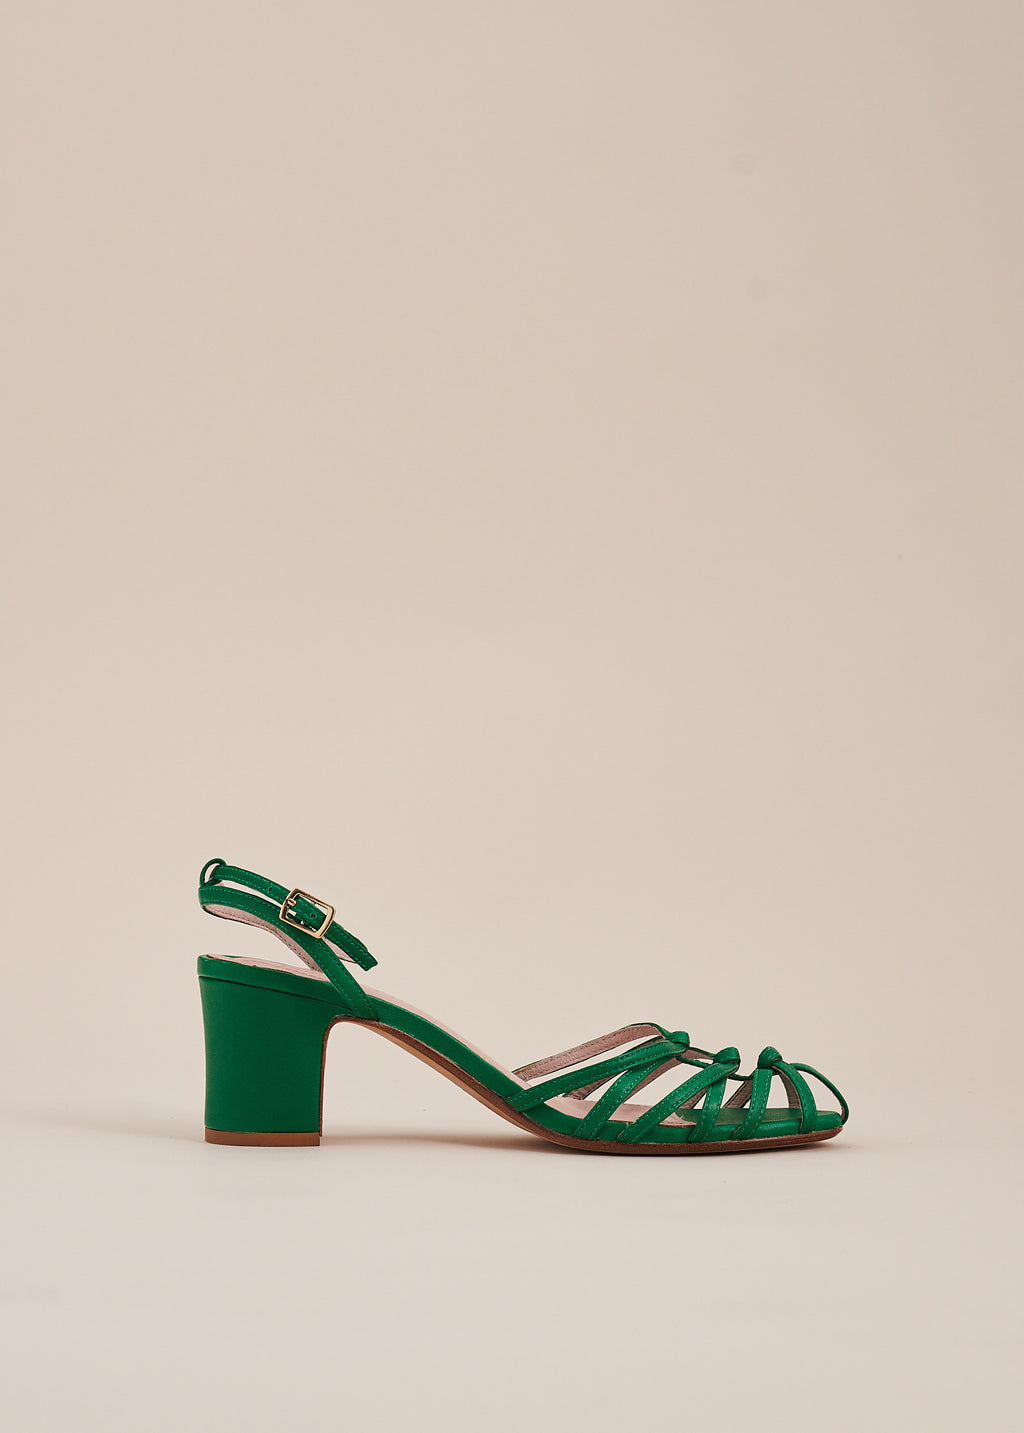 Lois by Miss L Fire is a strappy knotted upper sandal in Kelly green leather by  Miss L Fire. Perfect bridesmaid sandal. Small batch, ethically produced.